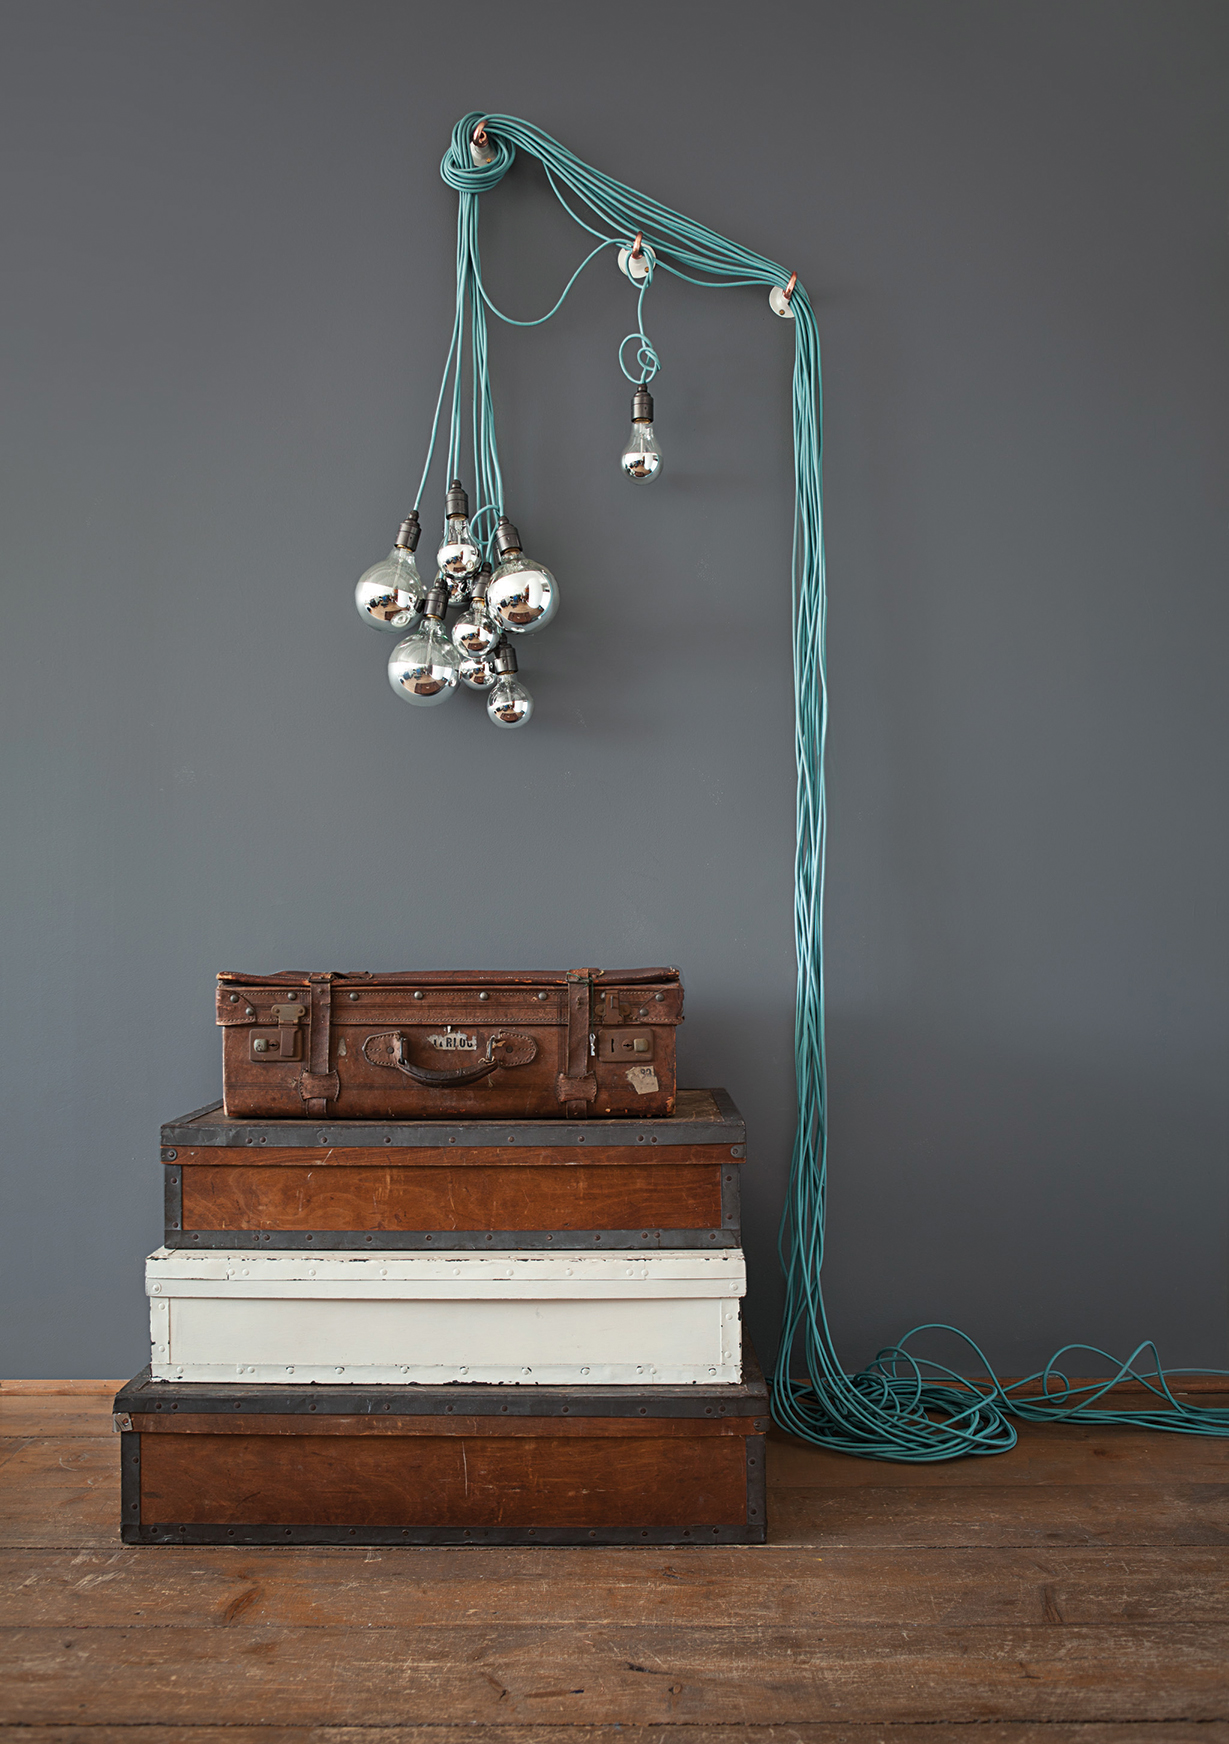 industrial inspired lighting. A Full And Complete Offering Of Vintage Industrial Inspired Lighting, Geared Specifically For The European Retail Market. Lighting